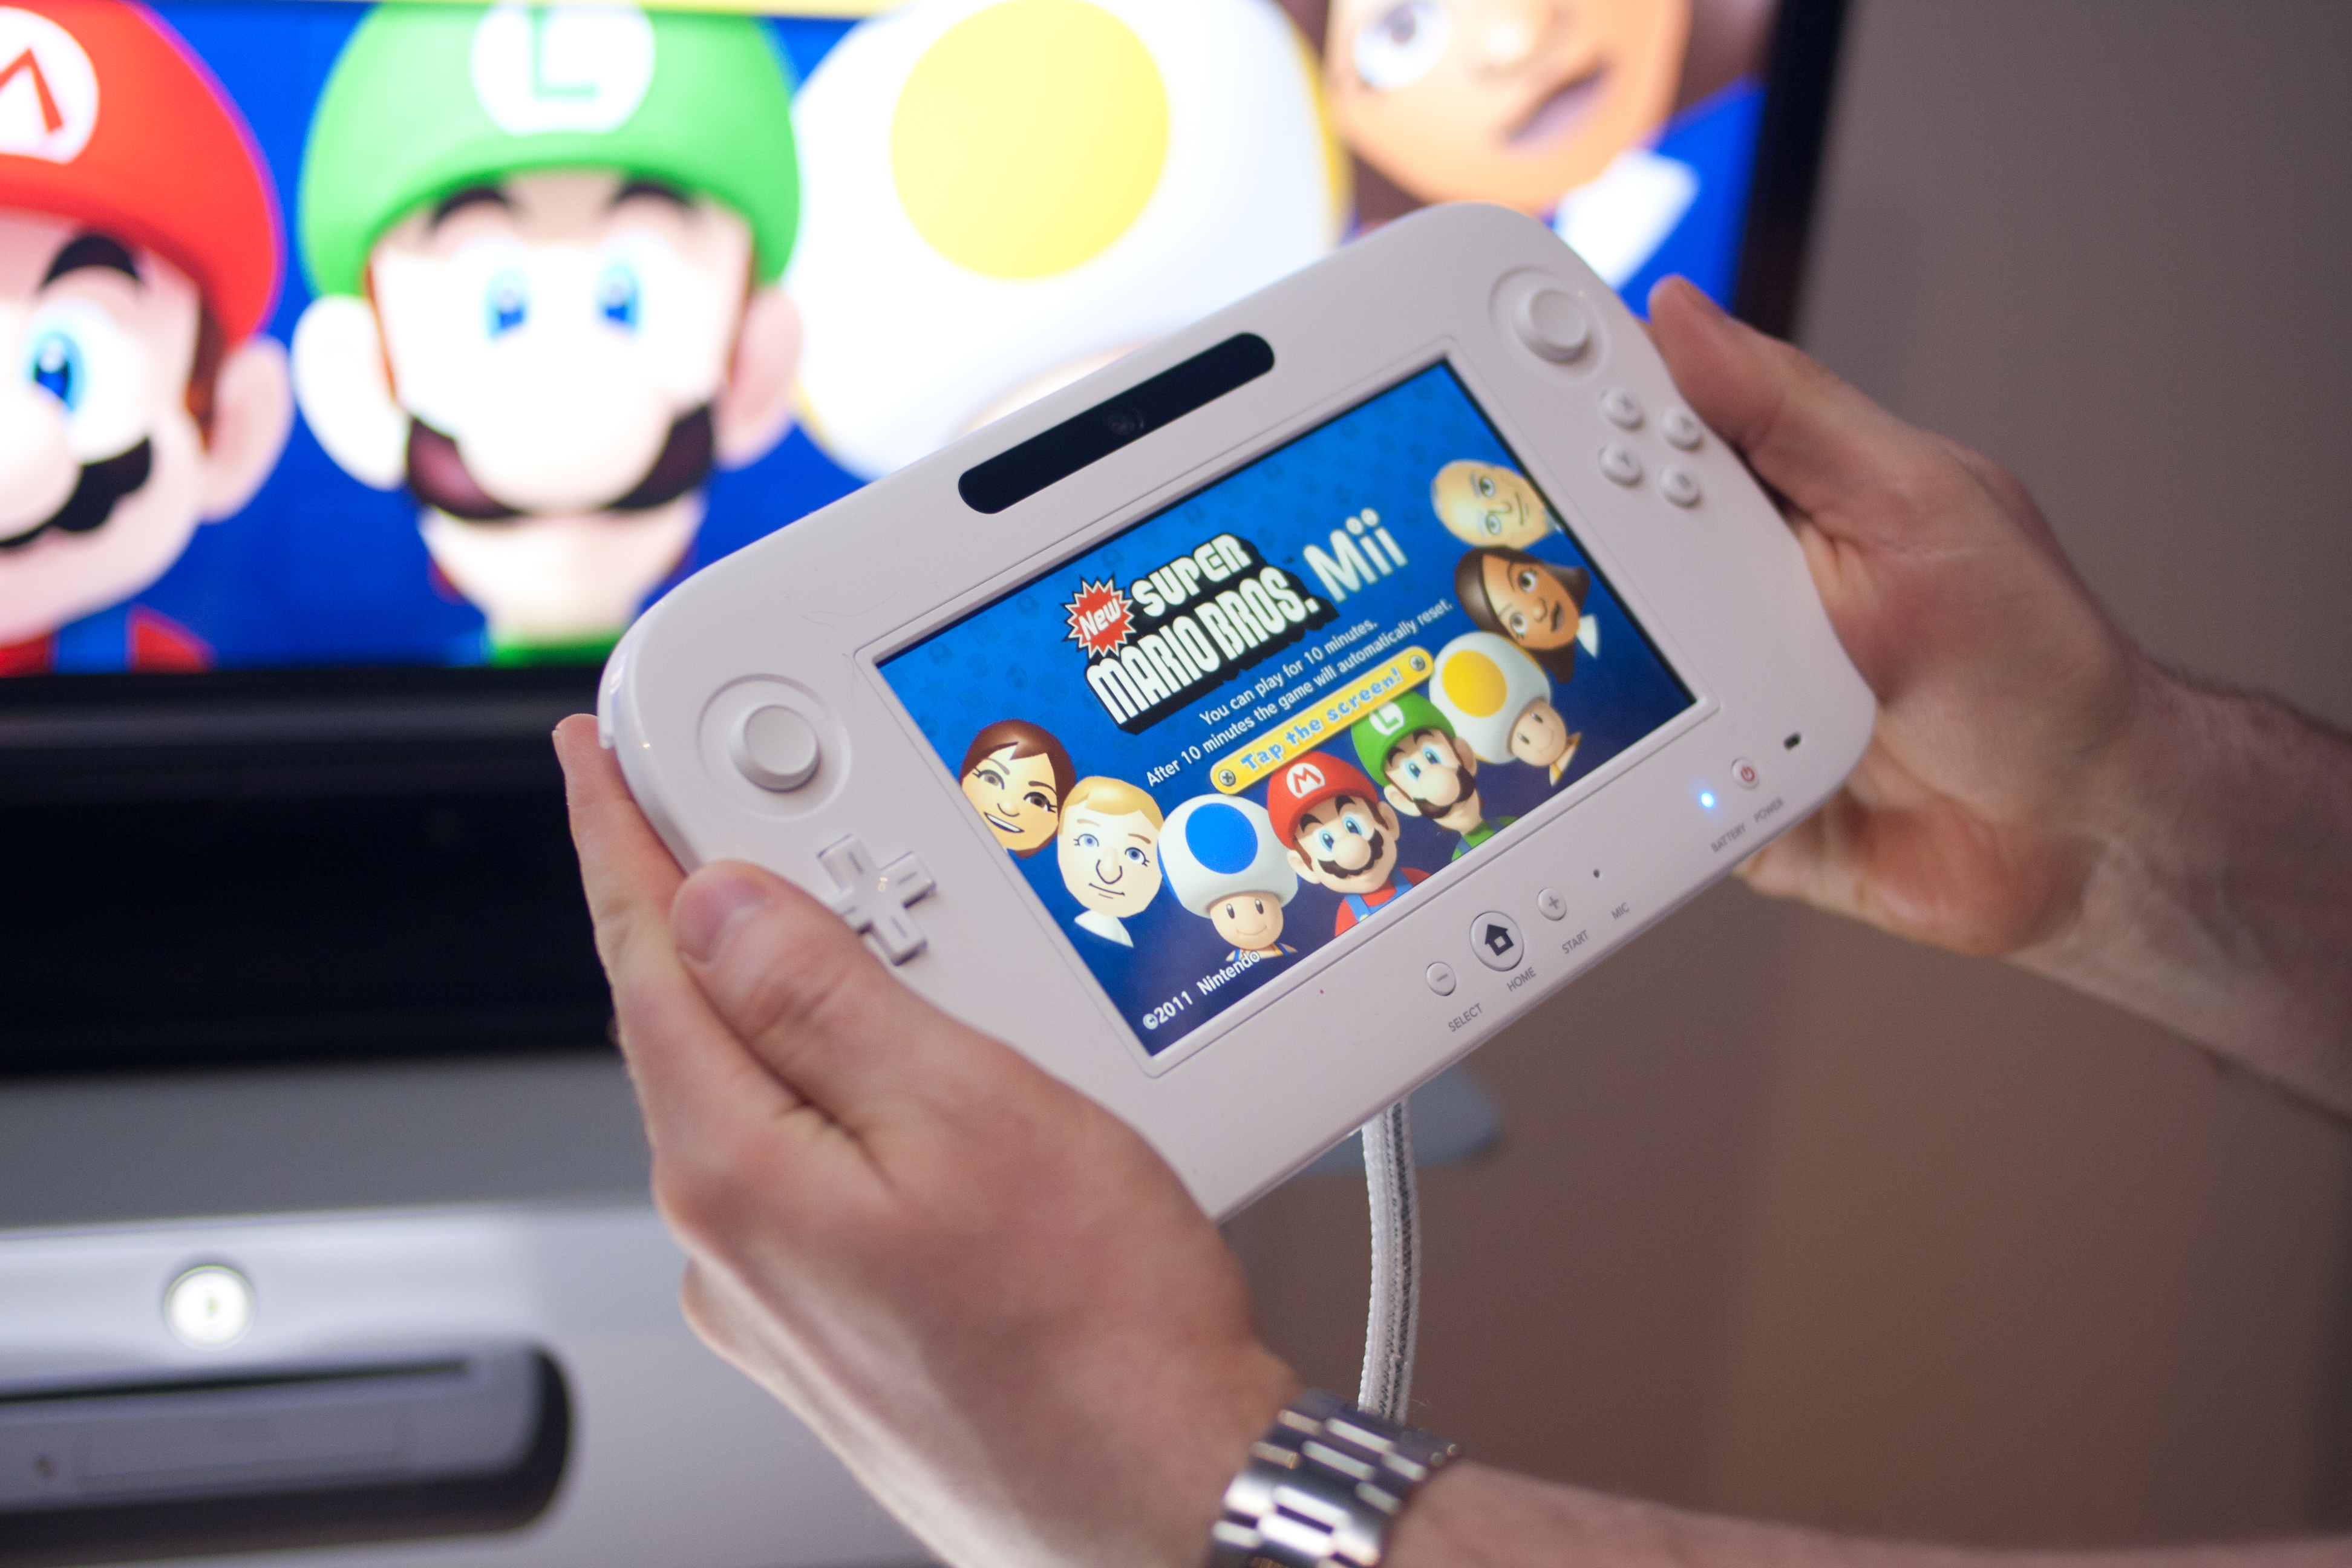 nintendo wii u the international business times says nintendo will